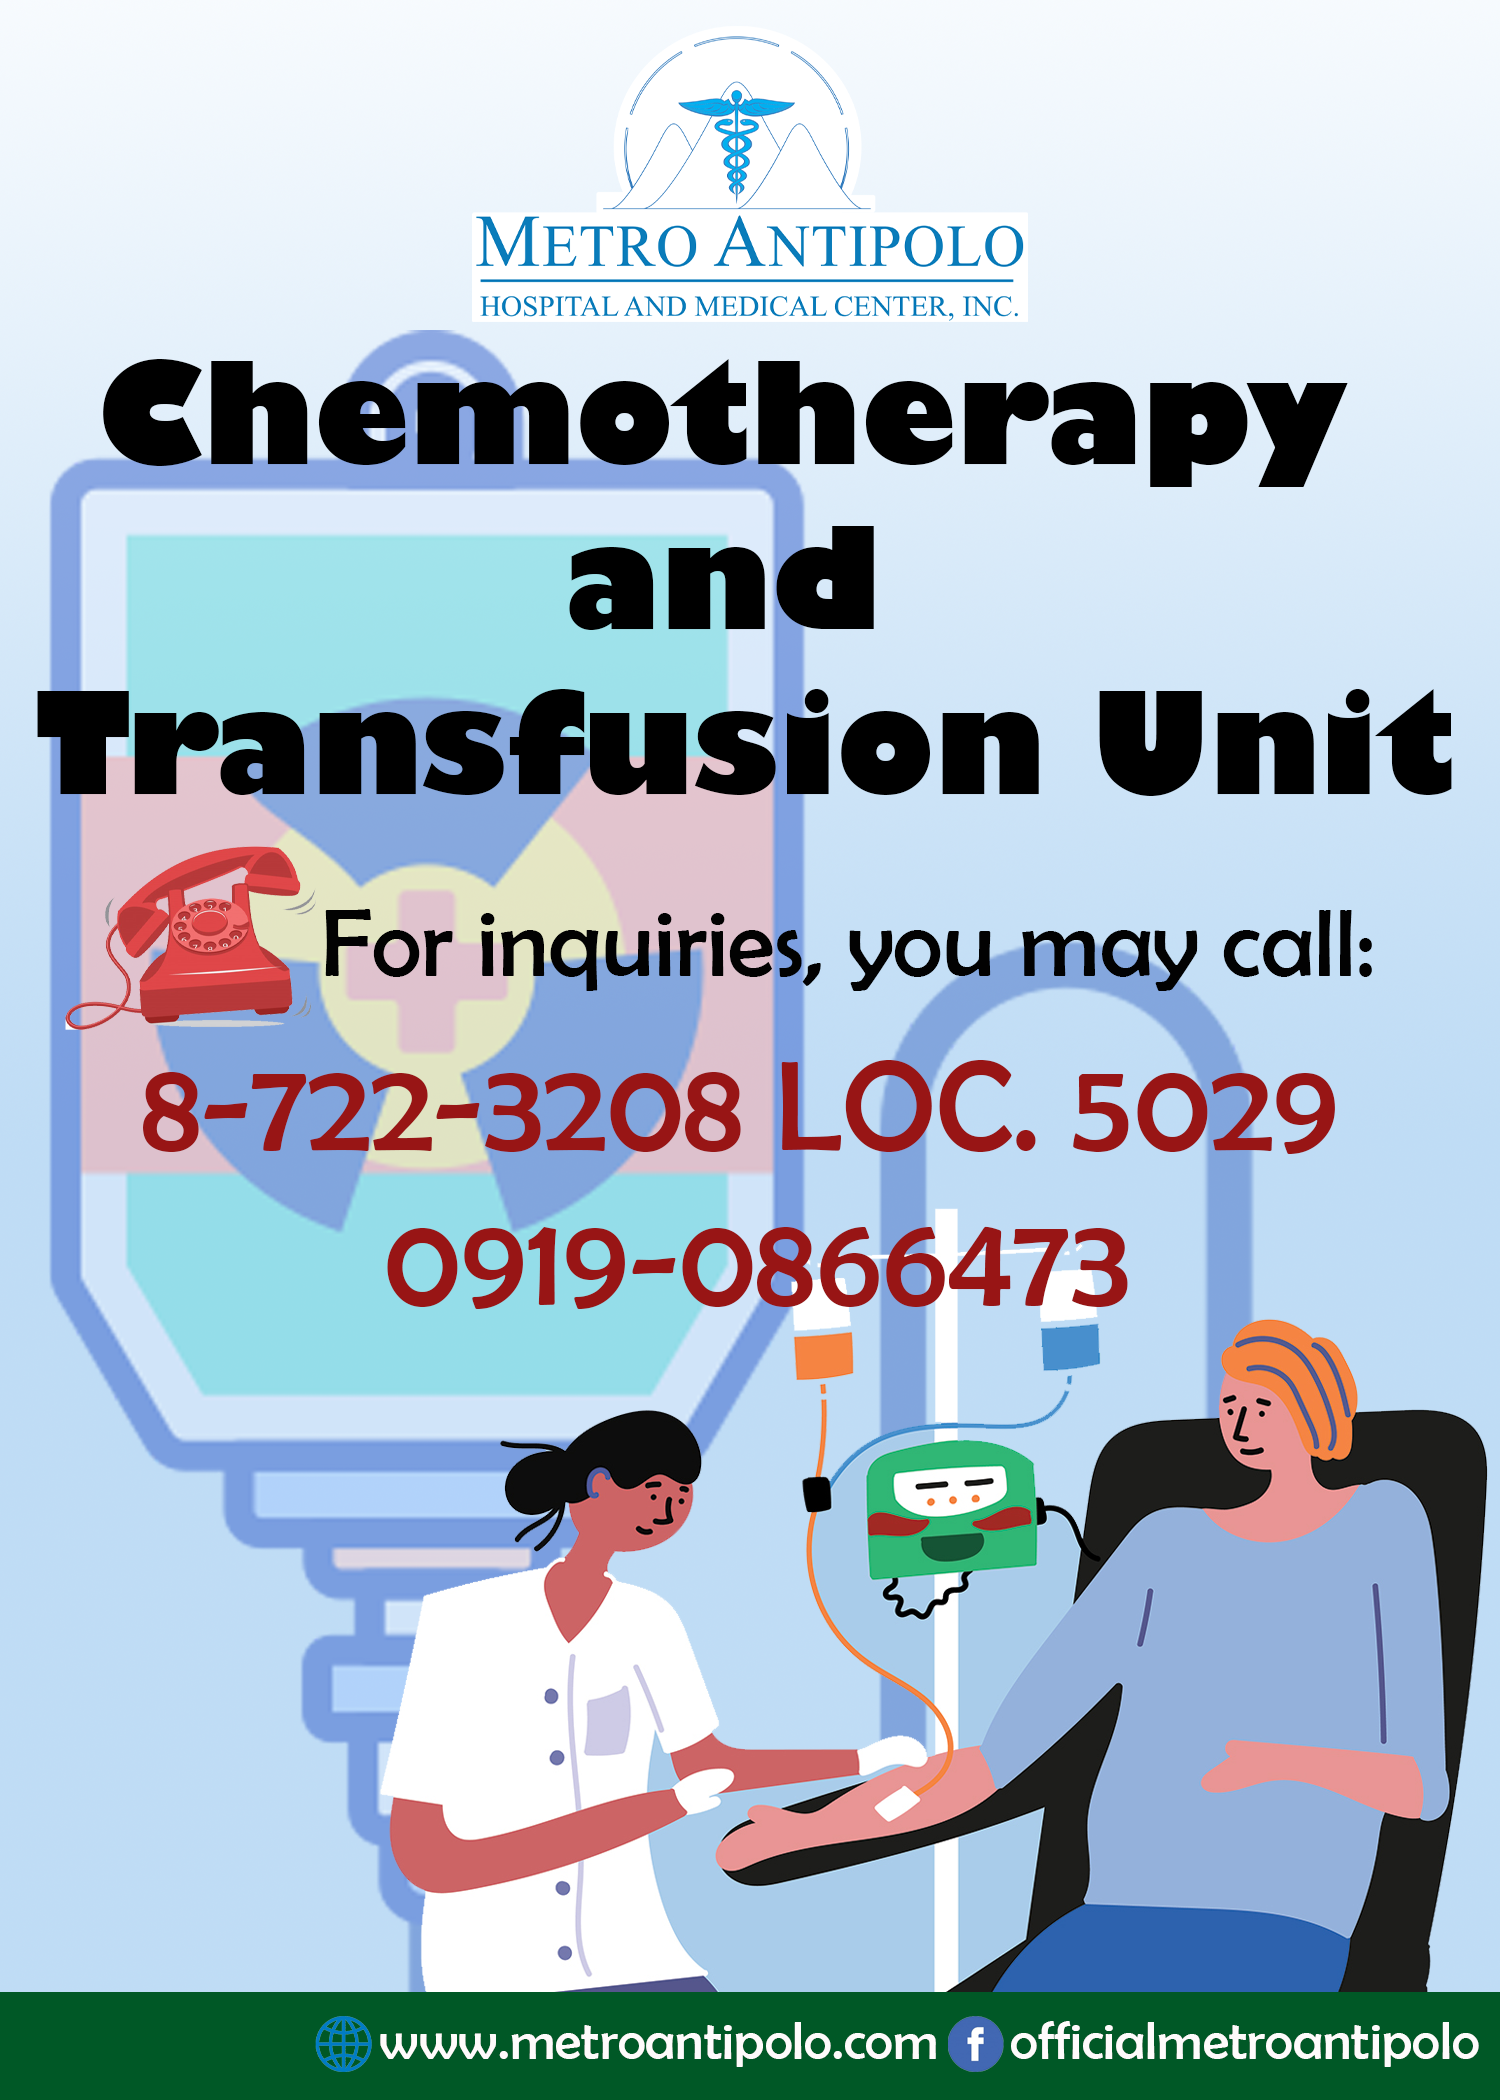 Chemotherapy and Transfusion Unit